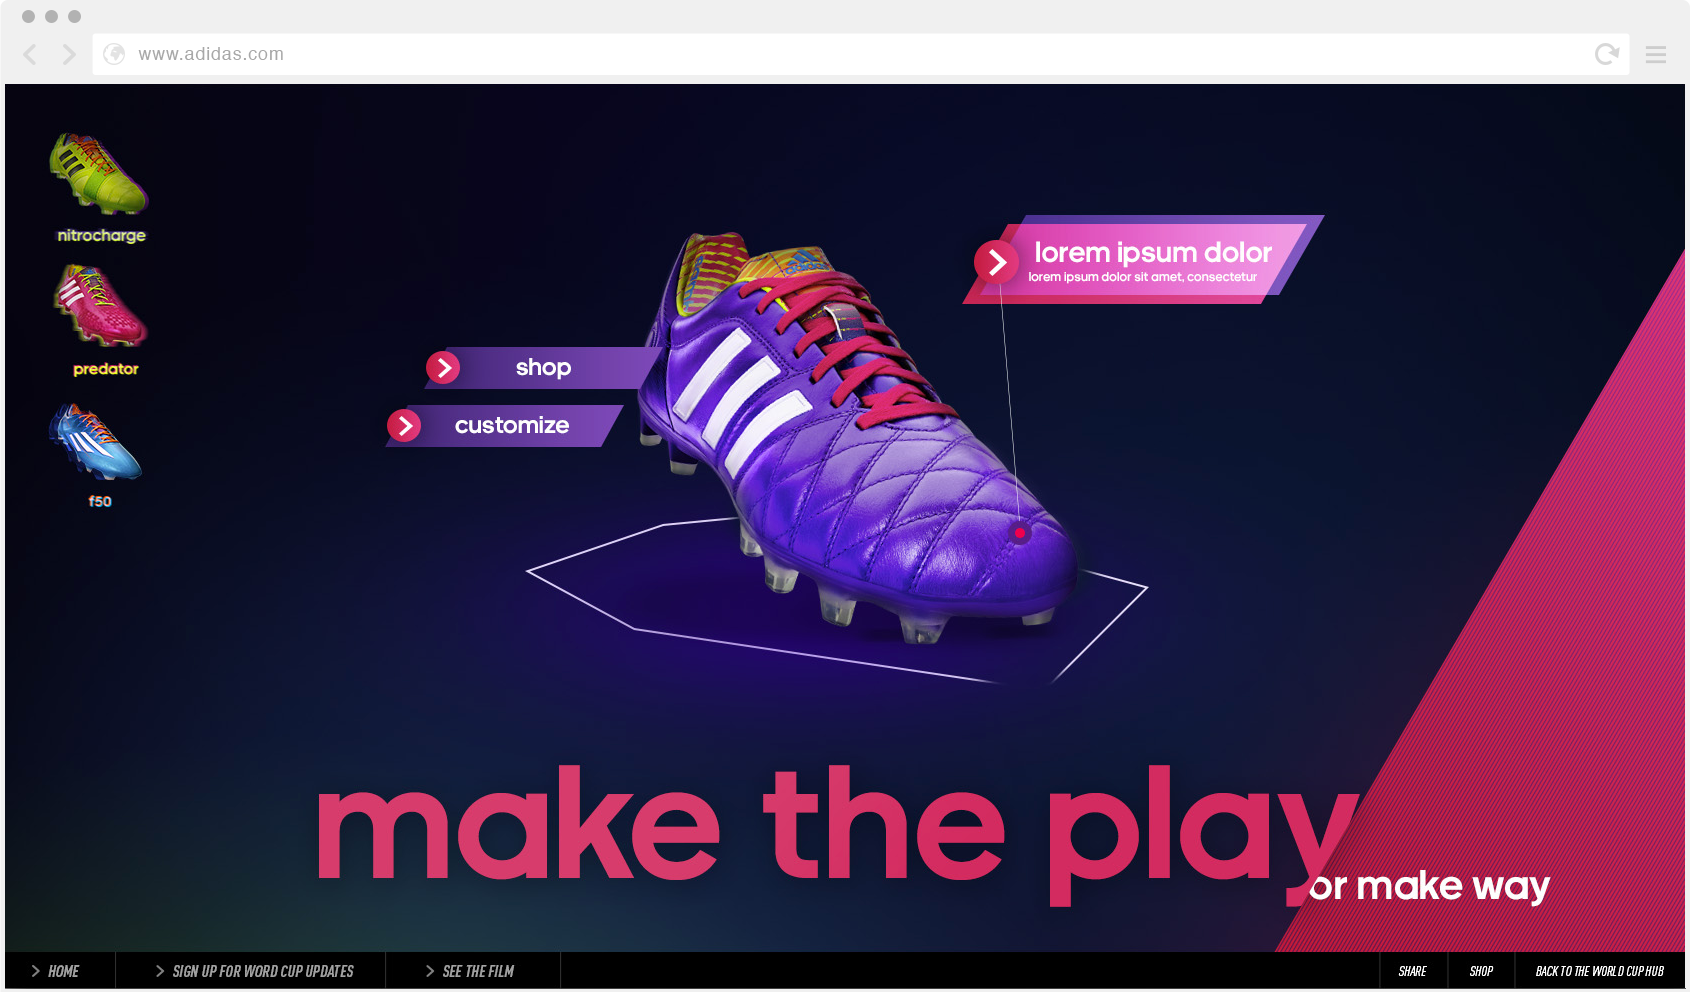 adidas_0003_Layer-Comp-4.png